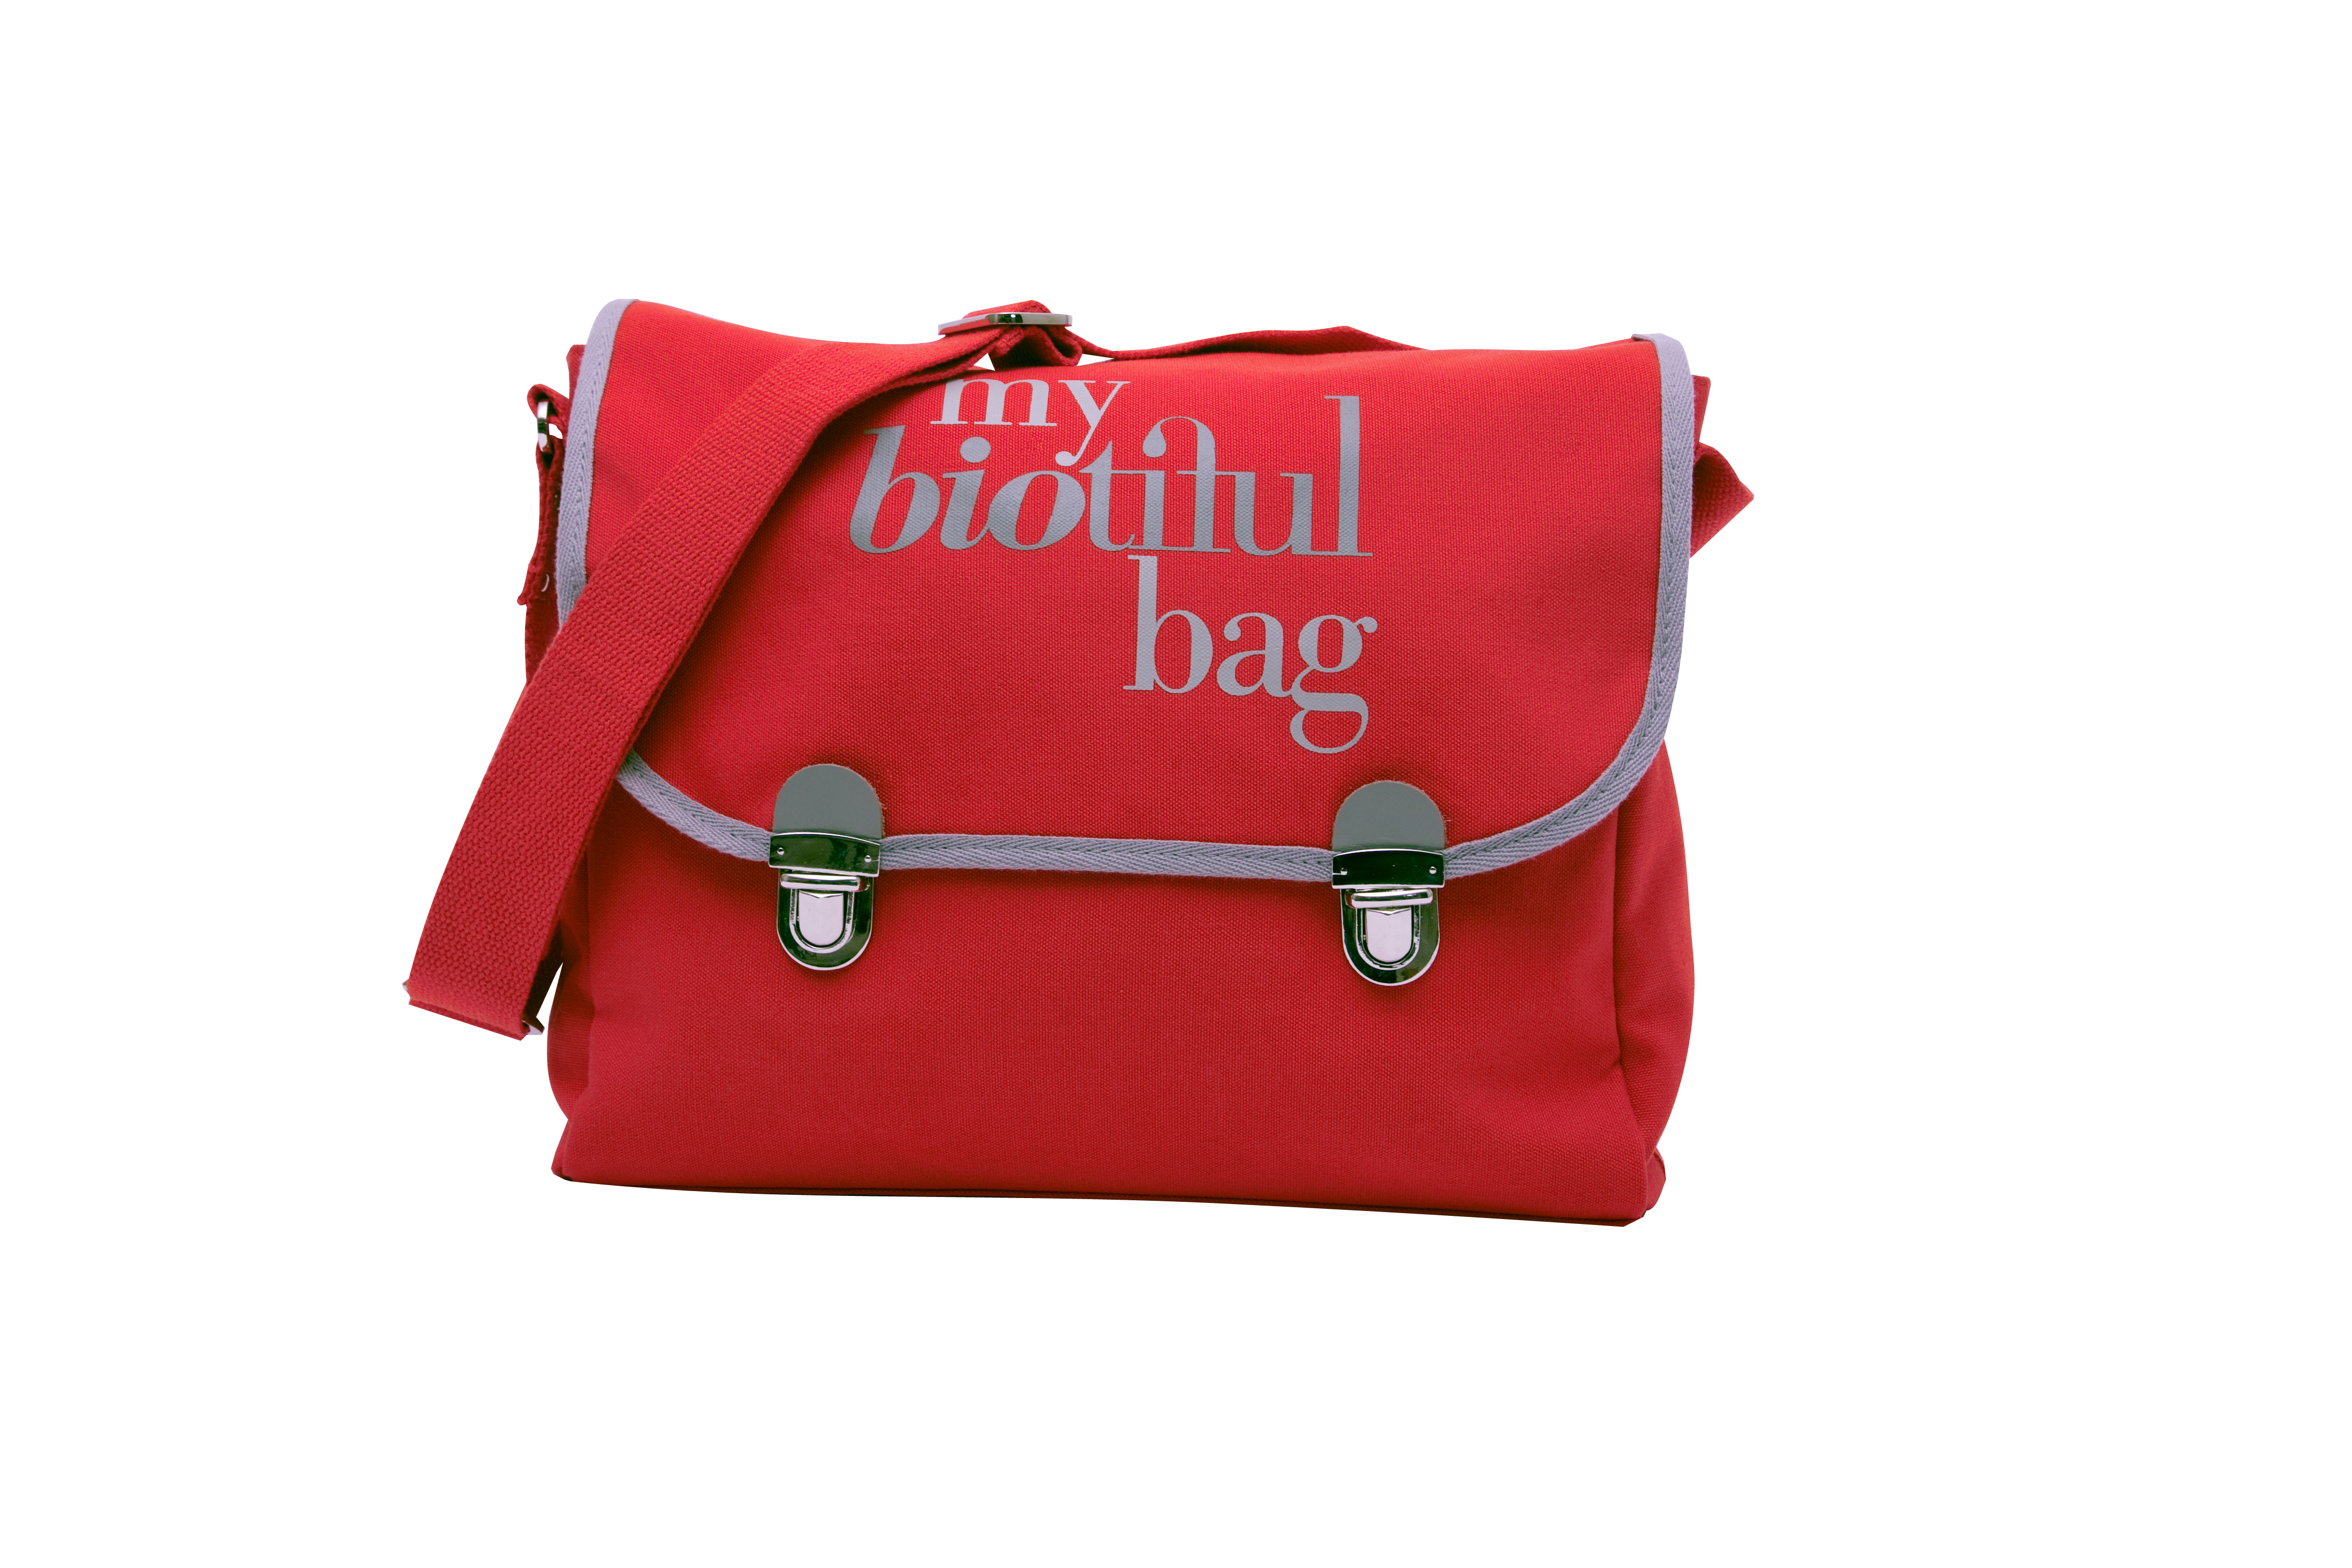 MBB sac besace rouge